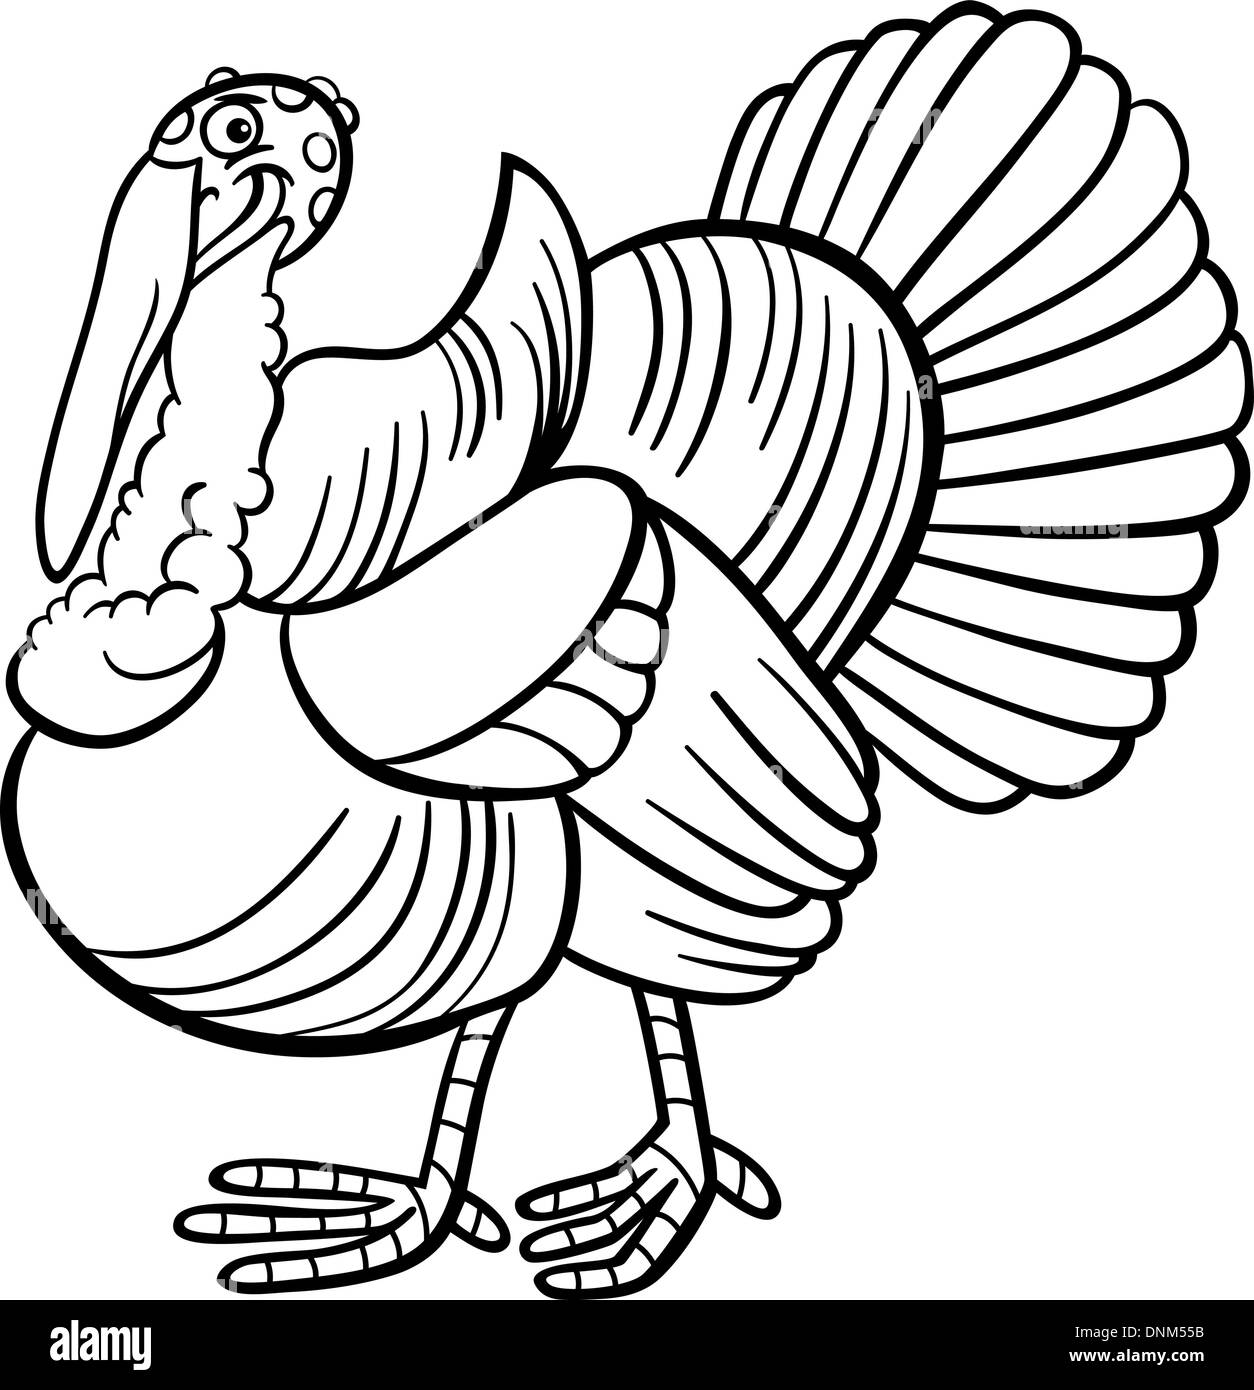 Black and White Cartoon Illustration of Funny Turkey Farm Bird Animal for Coloring Book Stock Vector